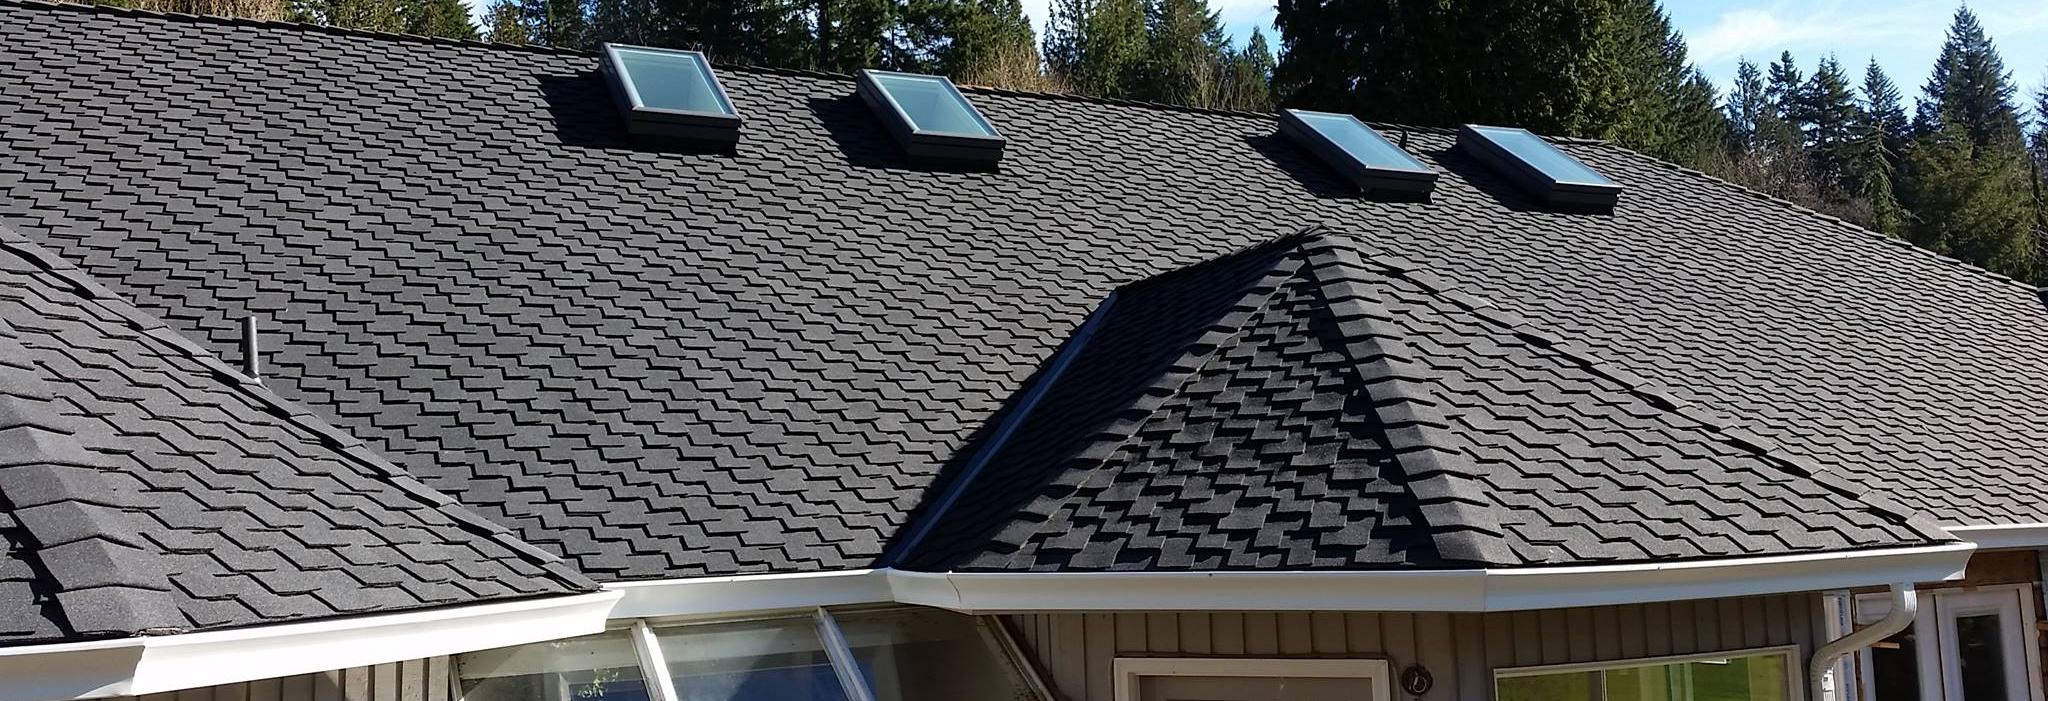 Riverside Roofing in Bothell, WA banner image